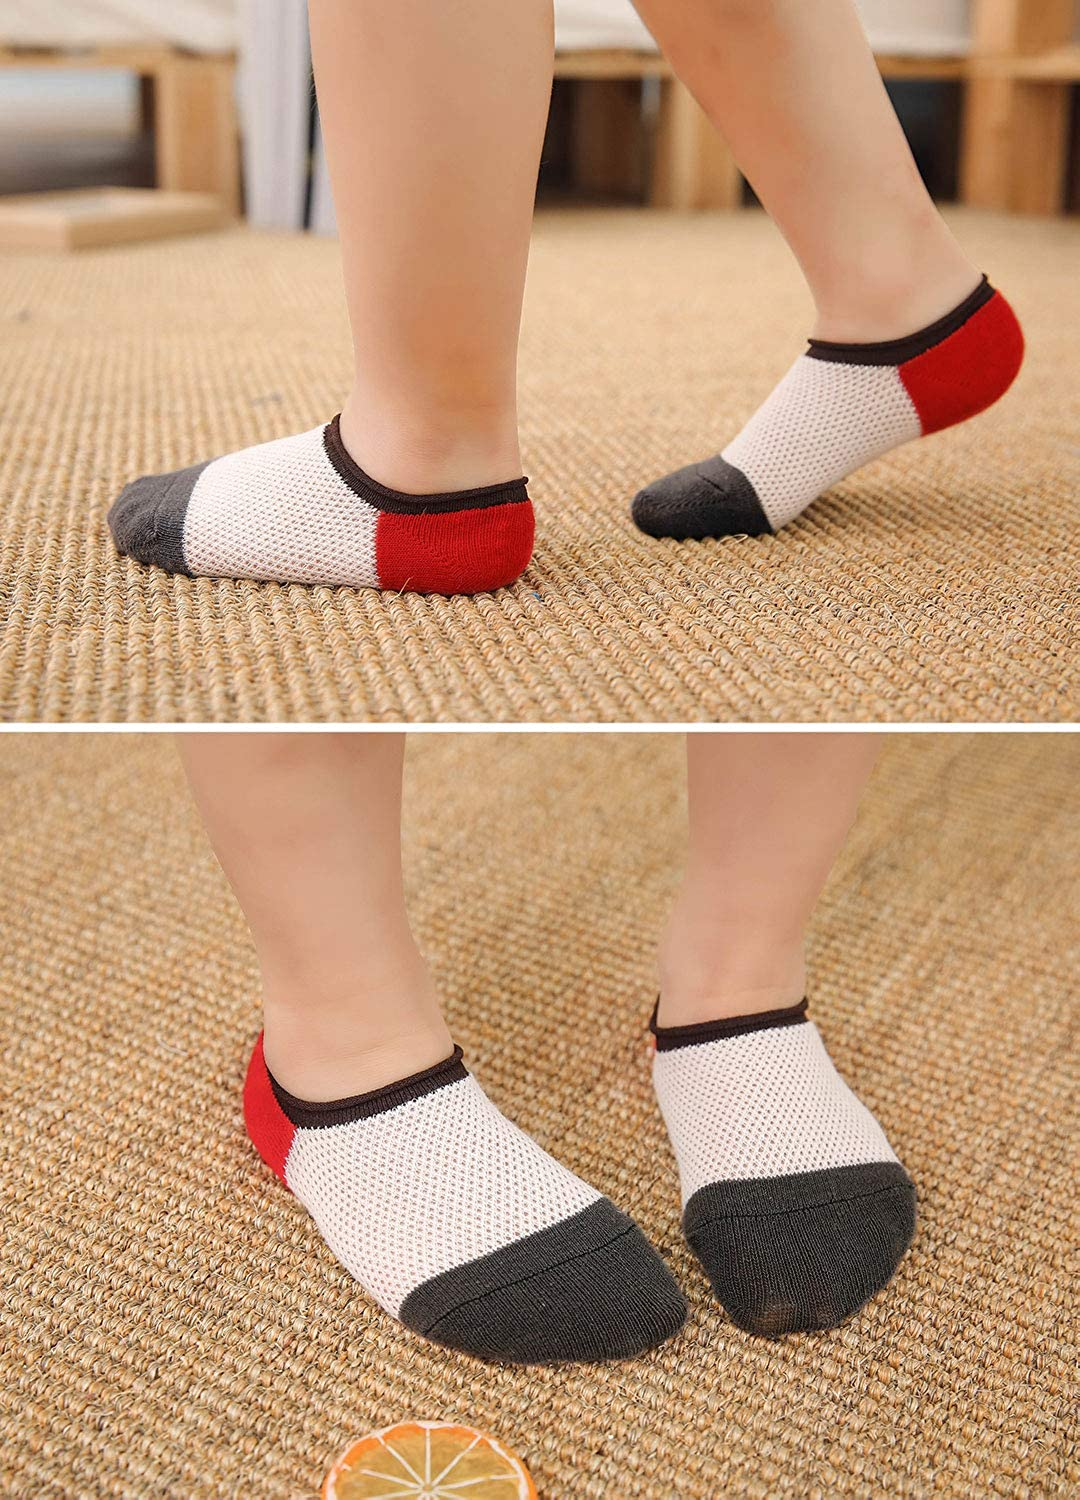 5 pairs 2-11 Years Toddler Boys Cotton Socks Kids Breathable Cute Casual Ankle Socks Back to School Socks